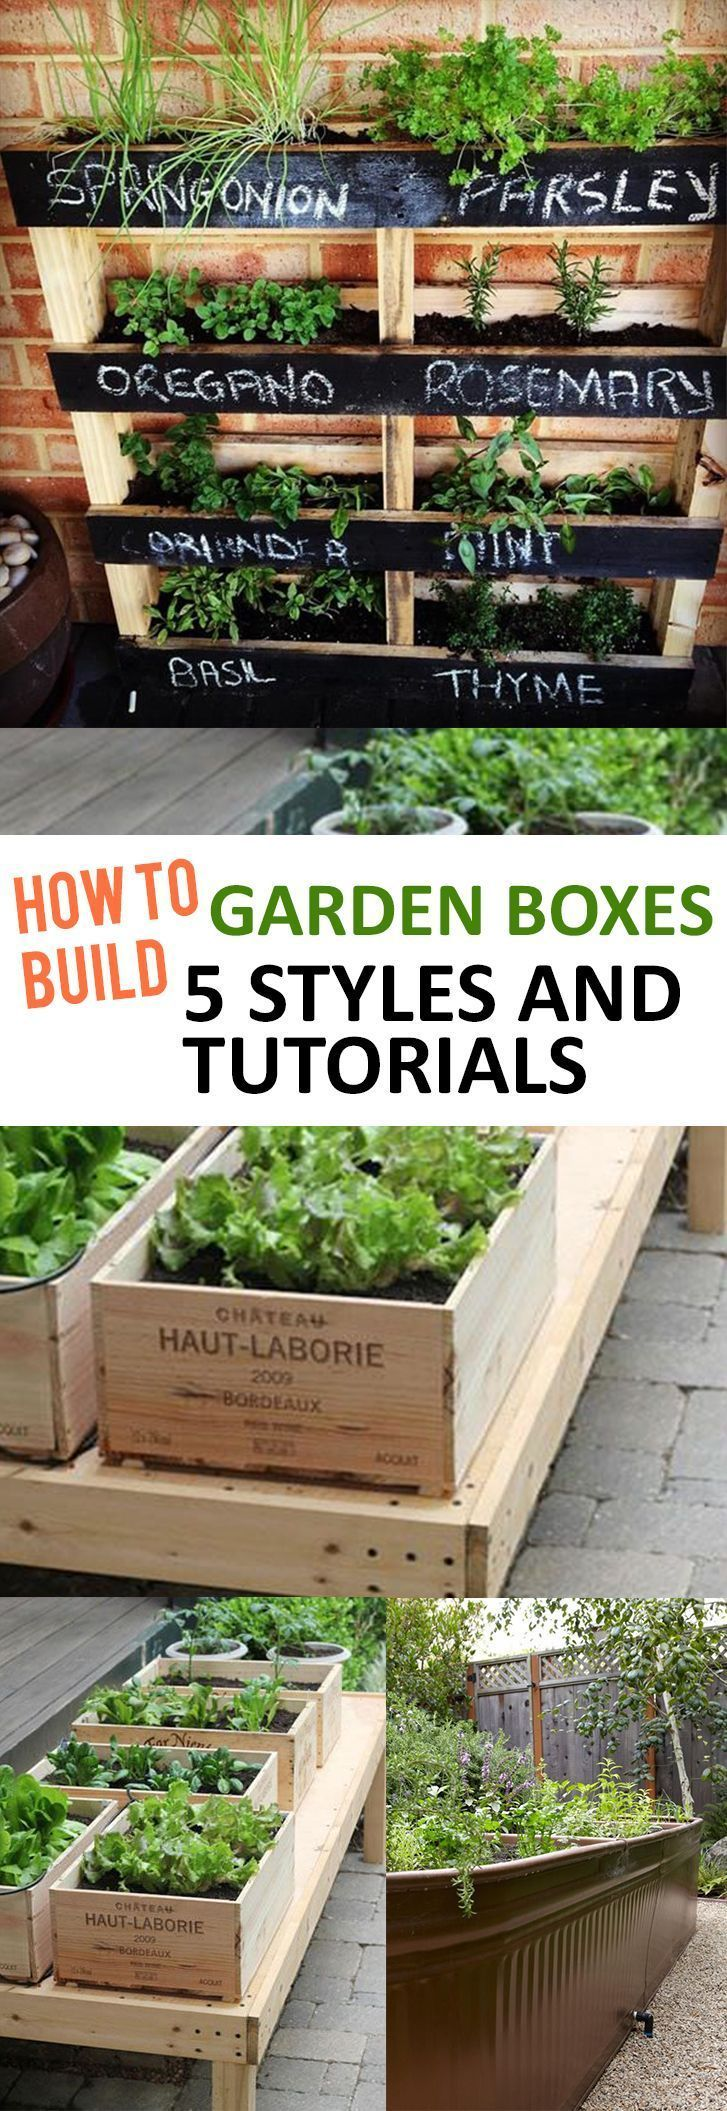 To build garden boxes: 5 styles and instructions